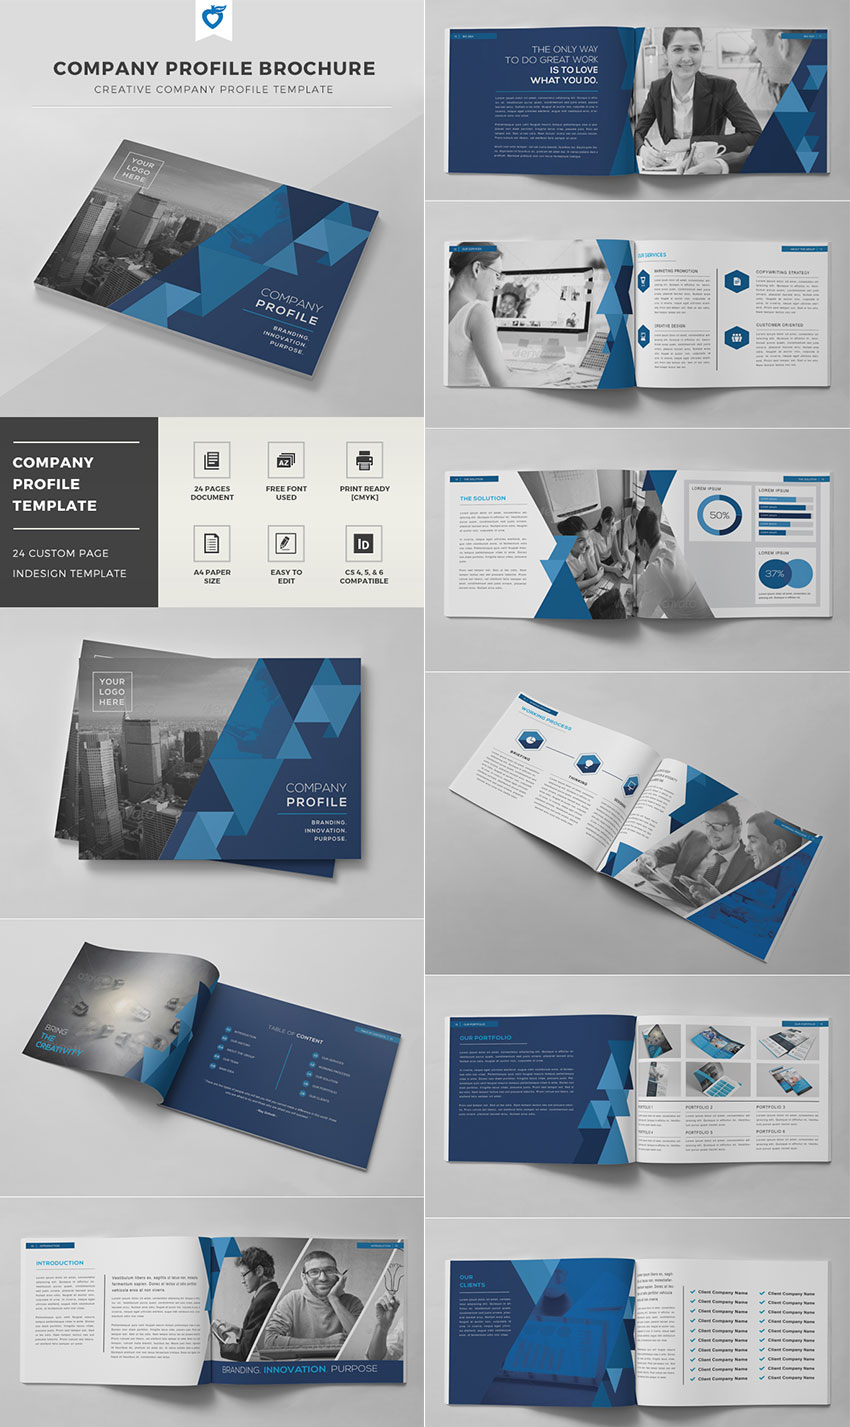 20 best indesign brochure templates for creative for Top product design firms